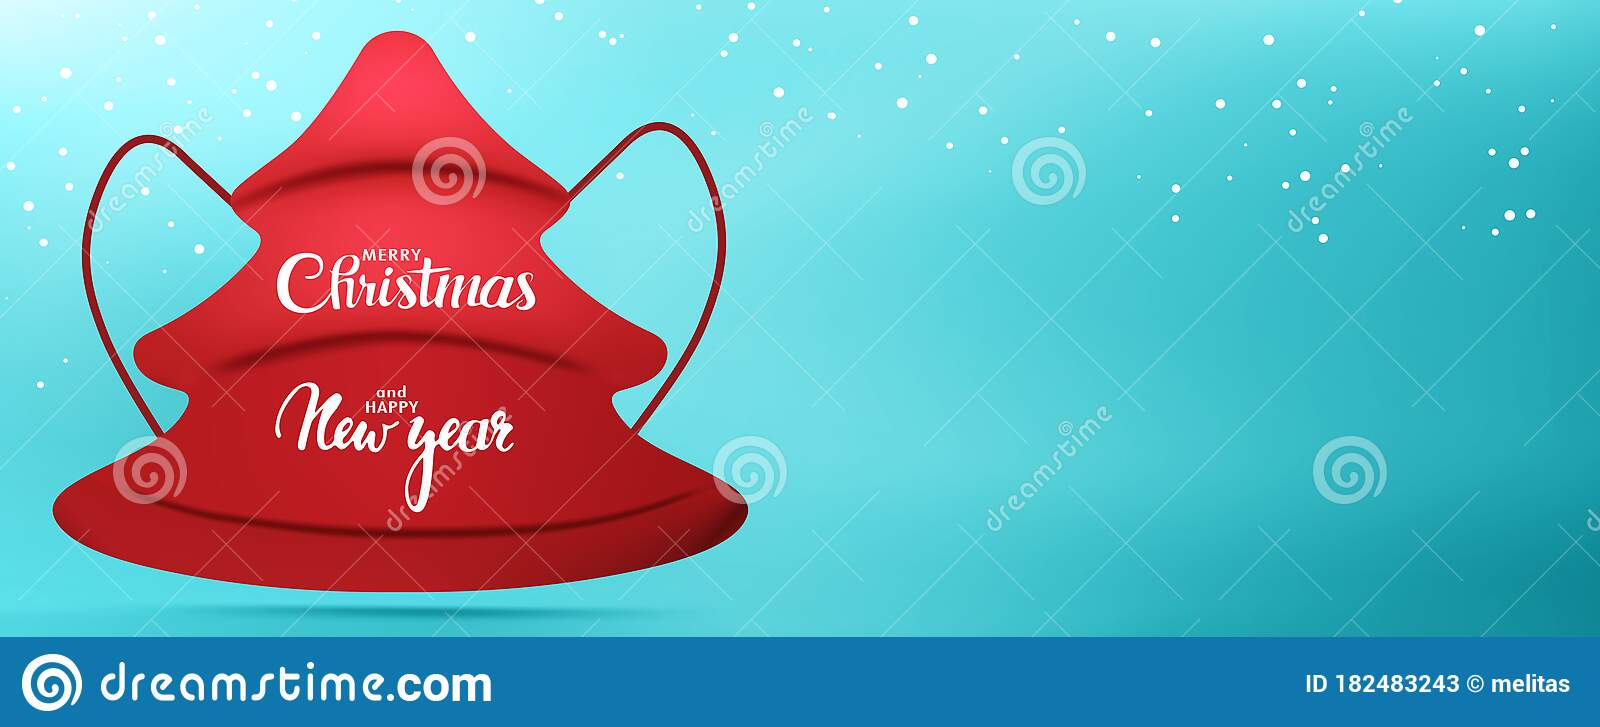 web banner christmas greetings with red medical mask in the shape of a fir tree with the inscription merry christmas and happy new stock vector illustration of celebration banner 182483243 dreamstime com